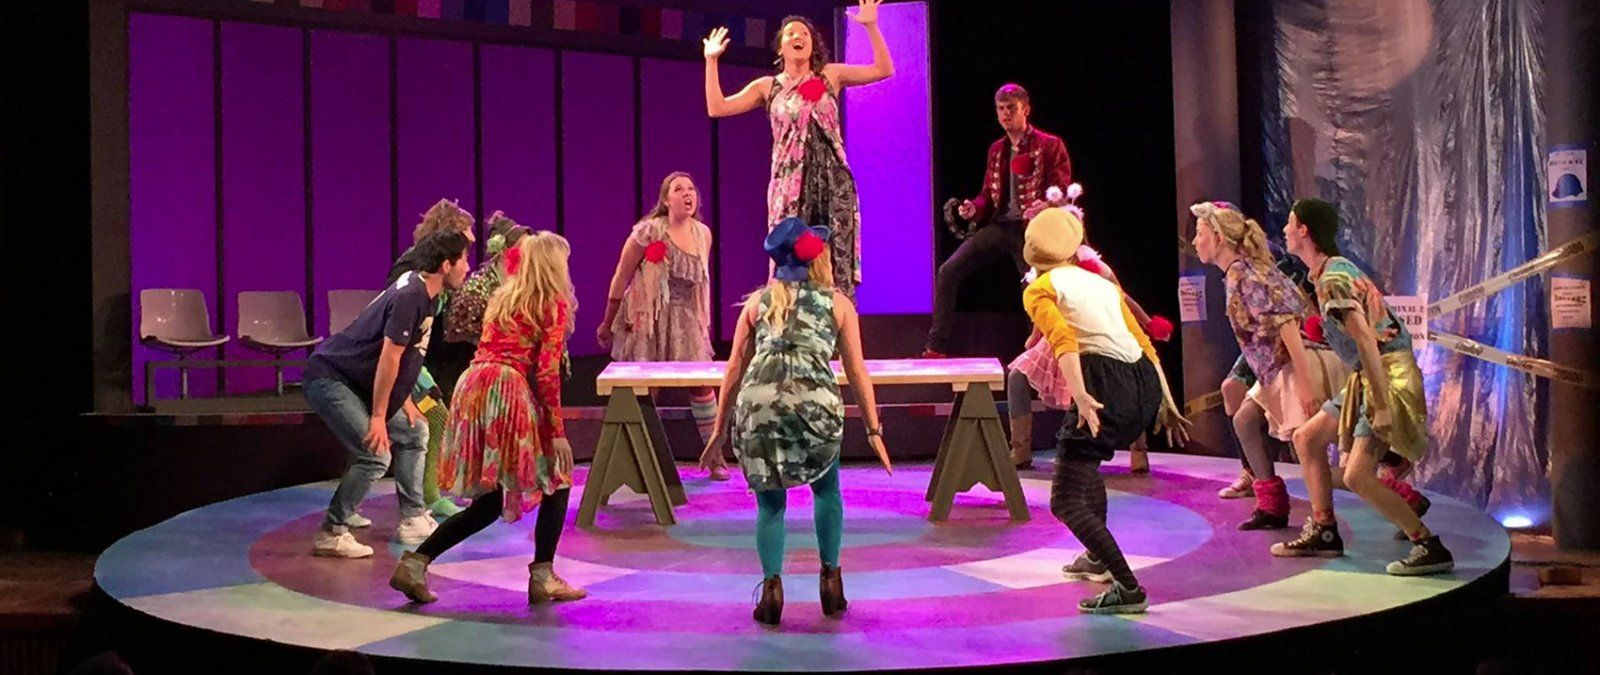 A group of student actors in colorful costumes circle around at a singer on a elevated platform during the performance of Godspell